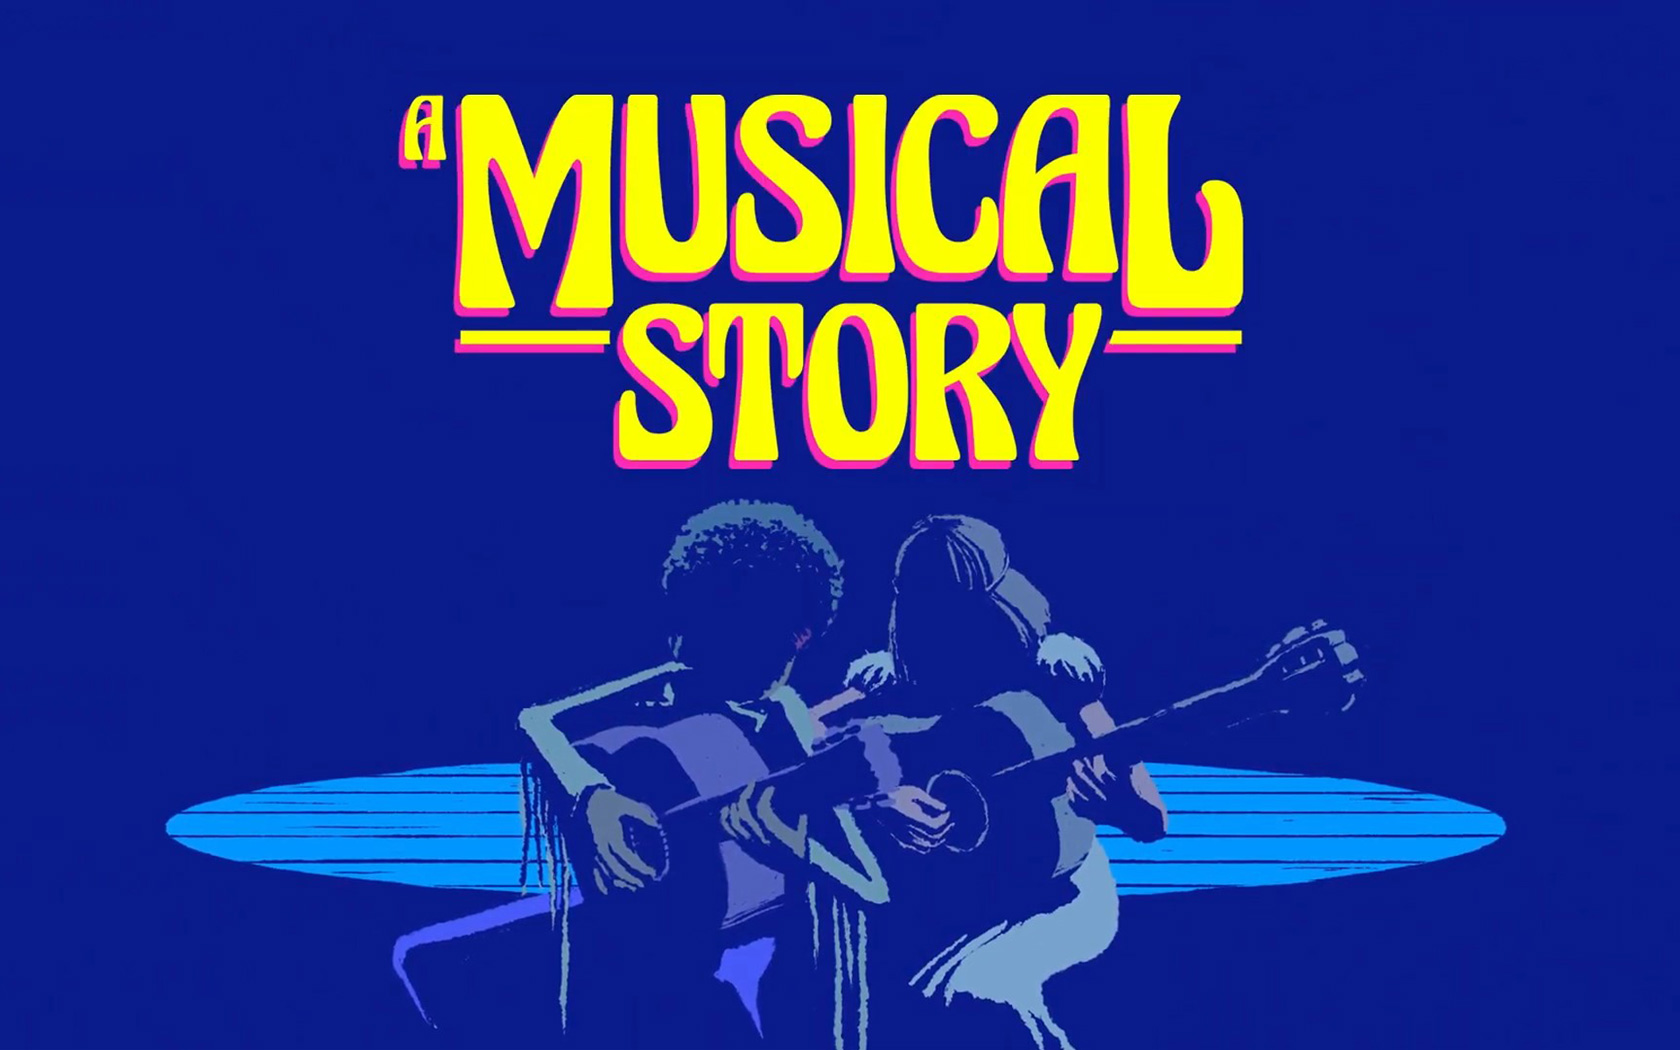 Free A Musical Story Wallpaper in 1680x1050